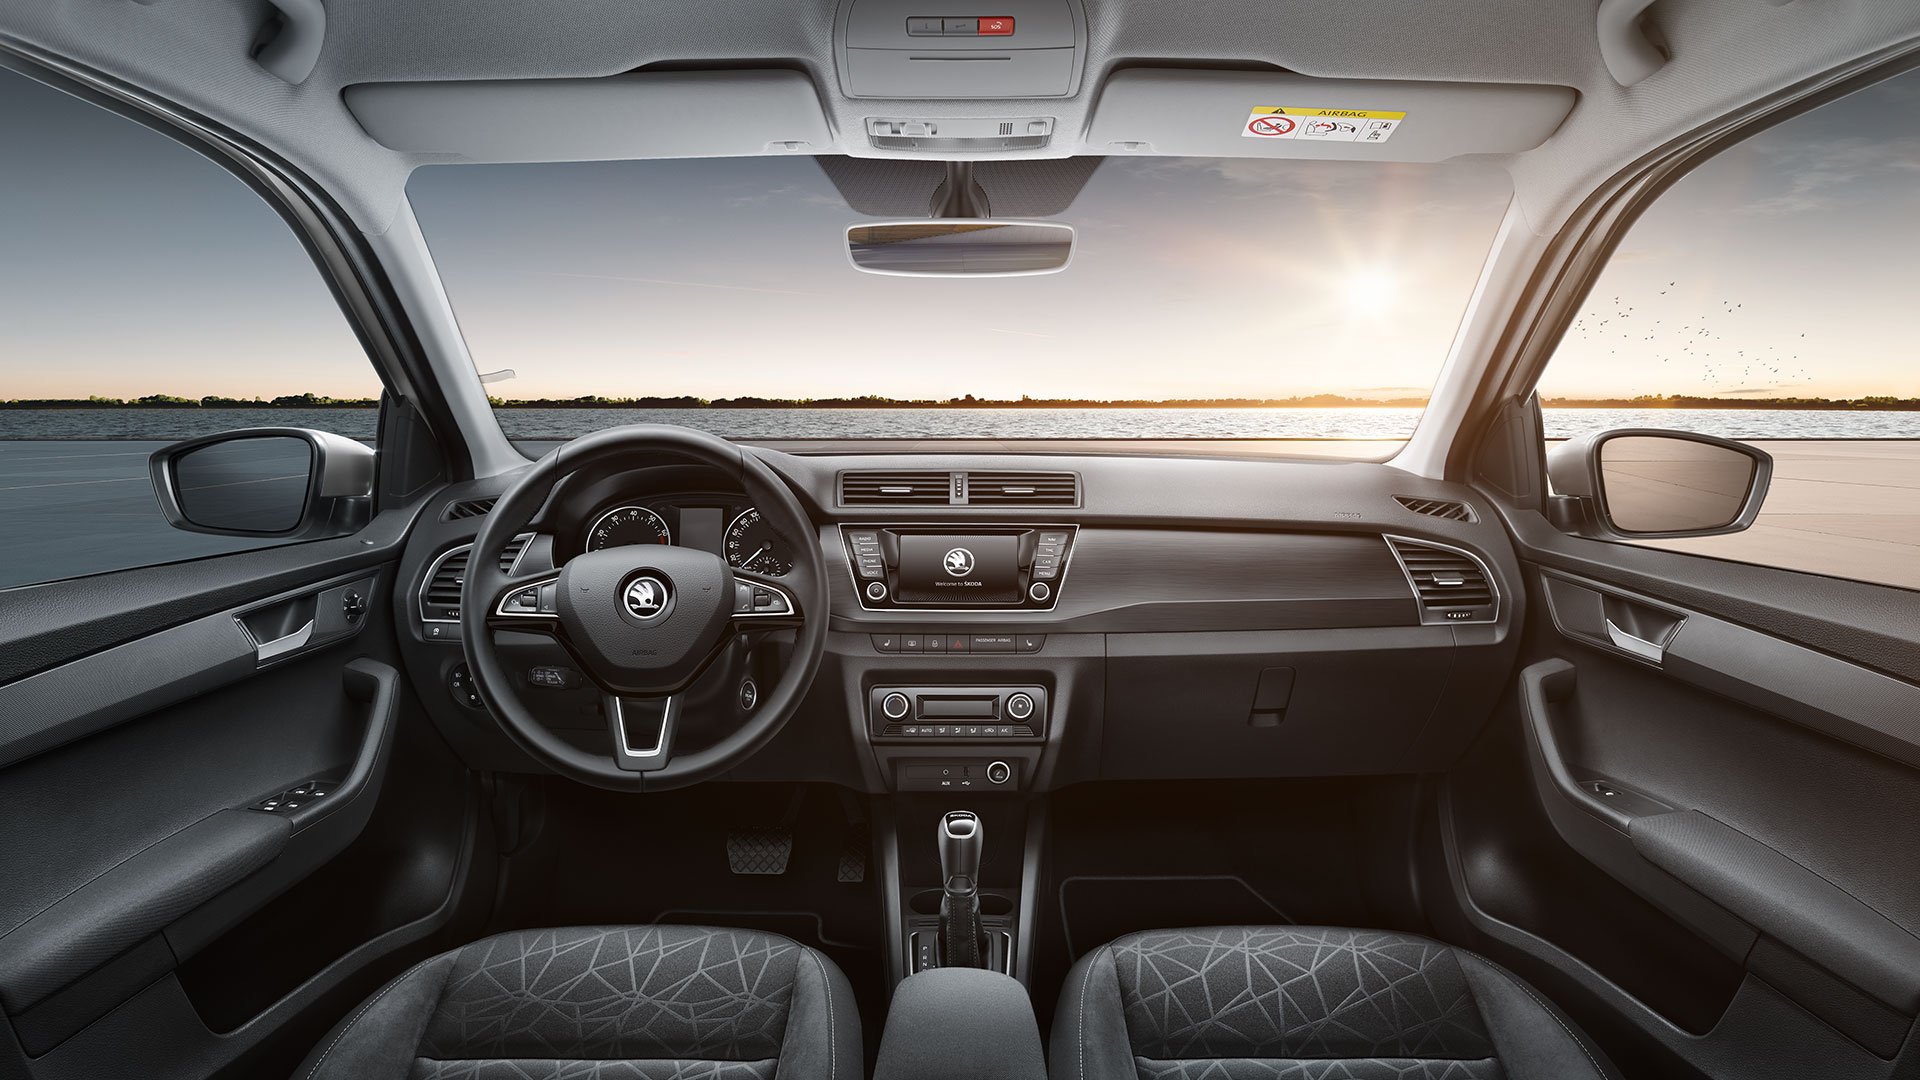 bl-ip-7__02__interieur-clever-fabia